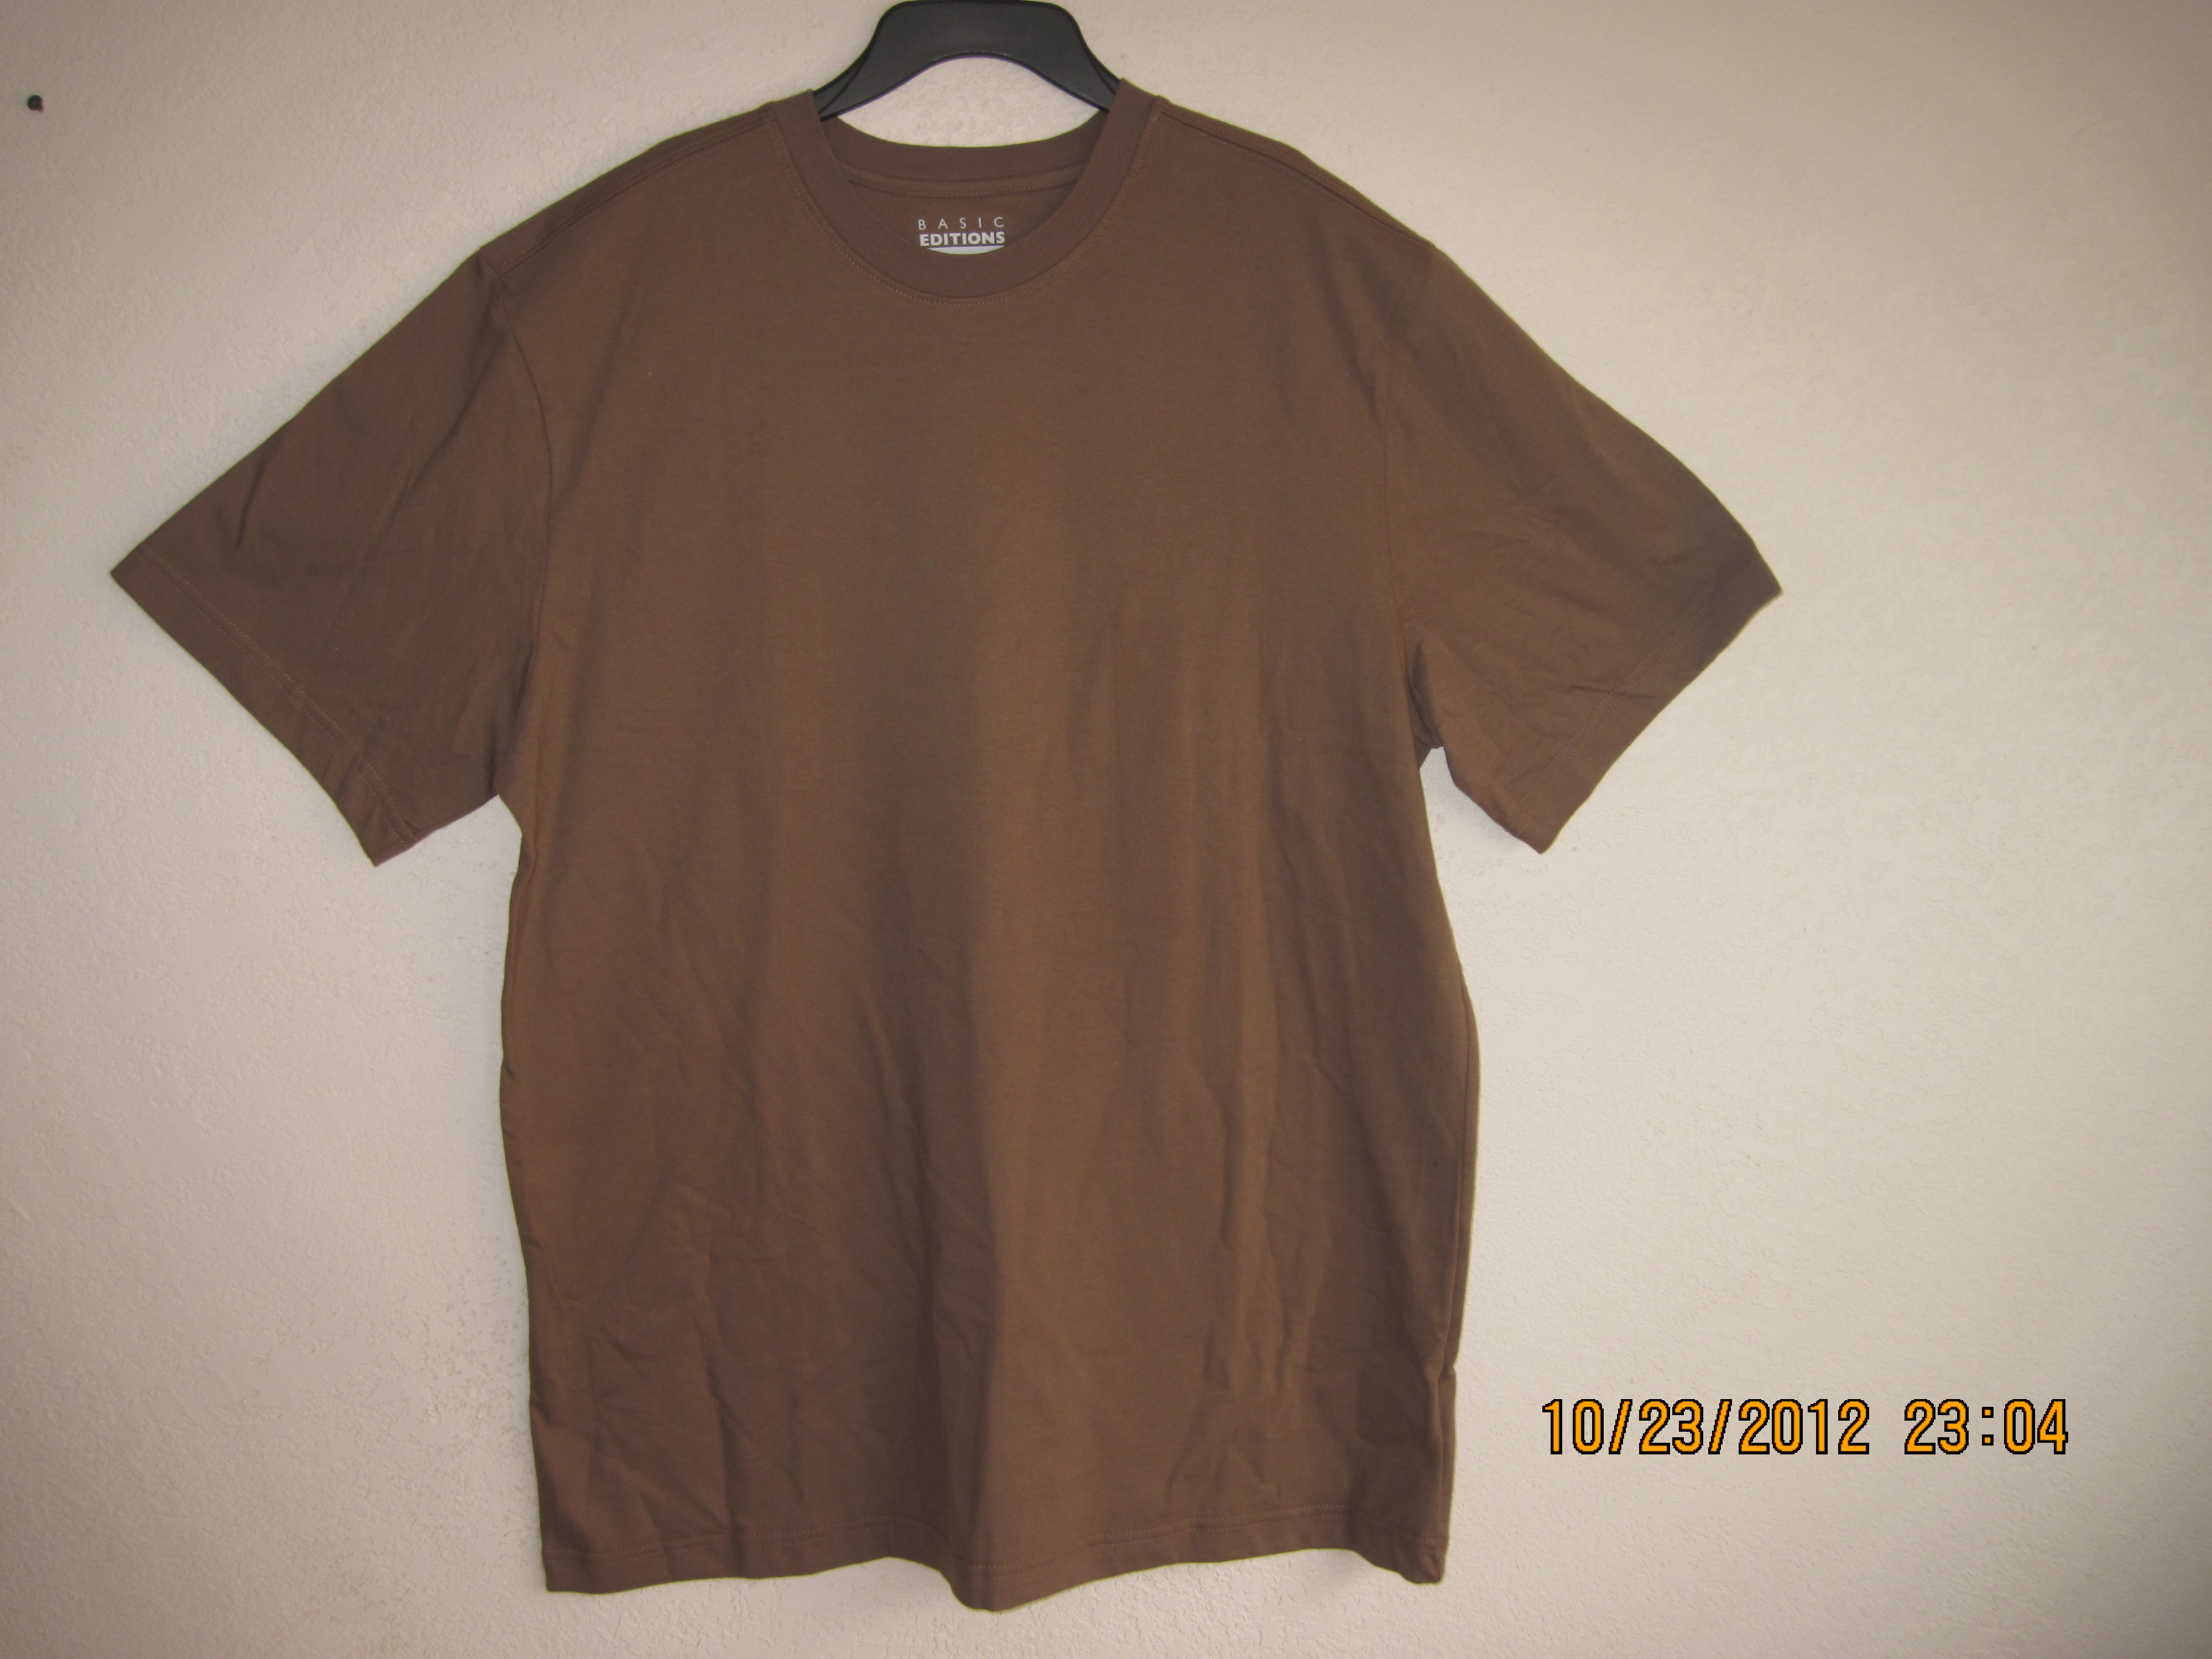 Basic Editions SzL SS Promo Crew Shirt - Brown